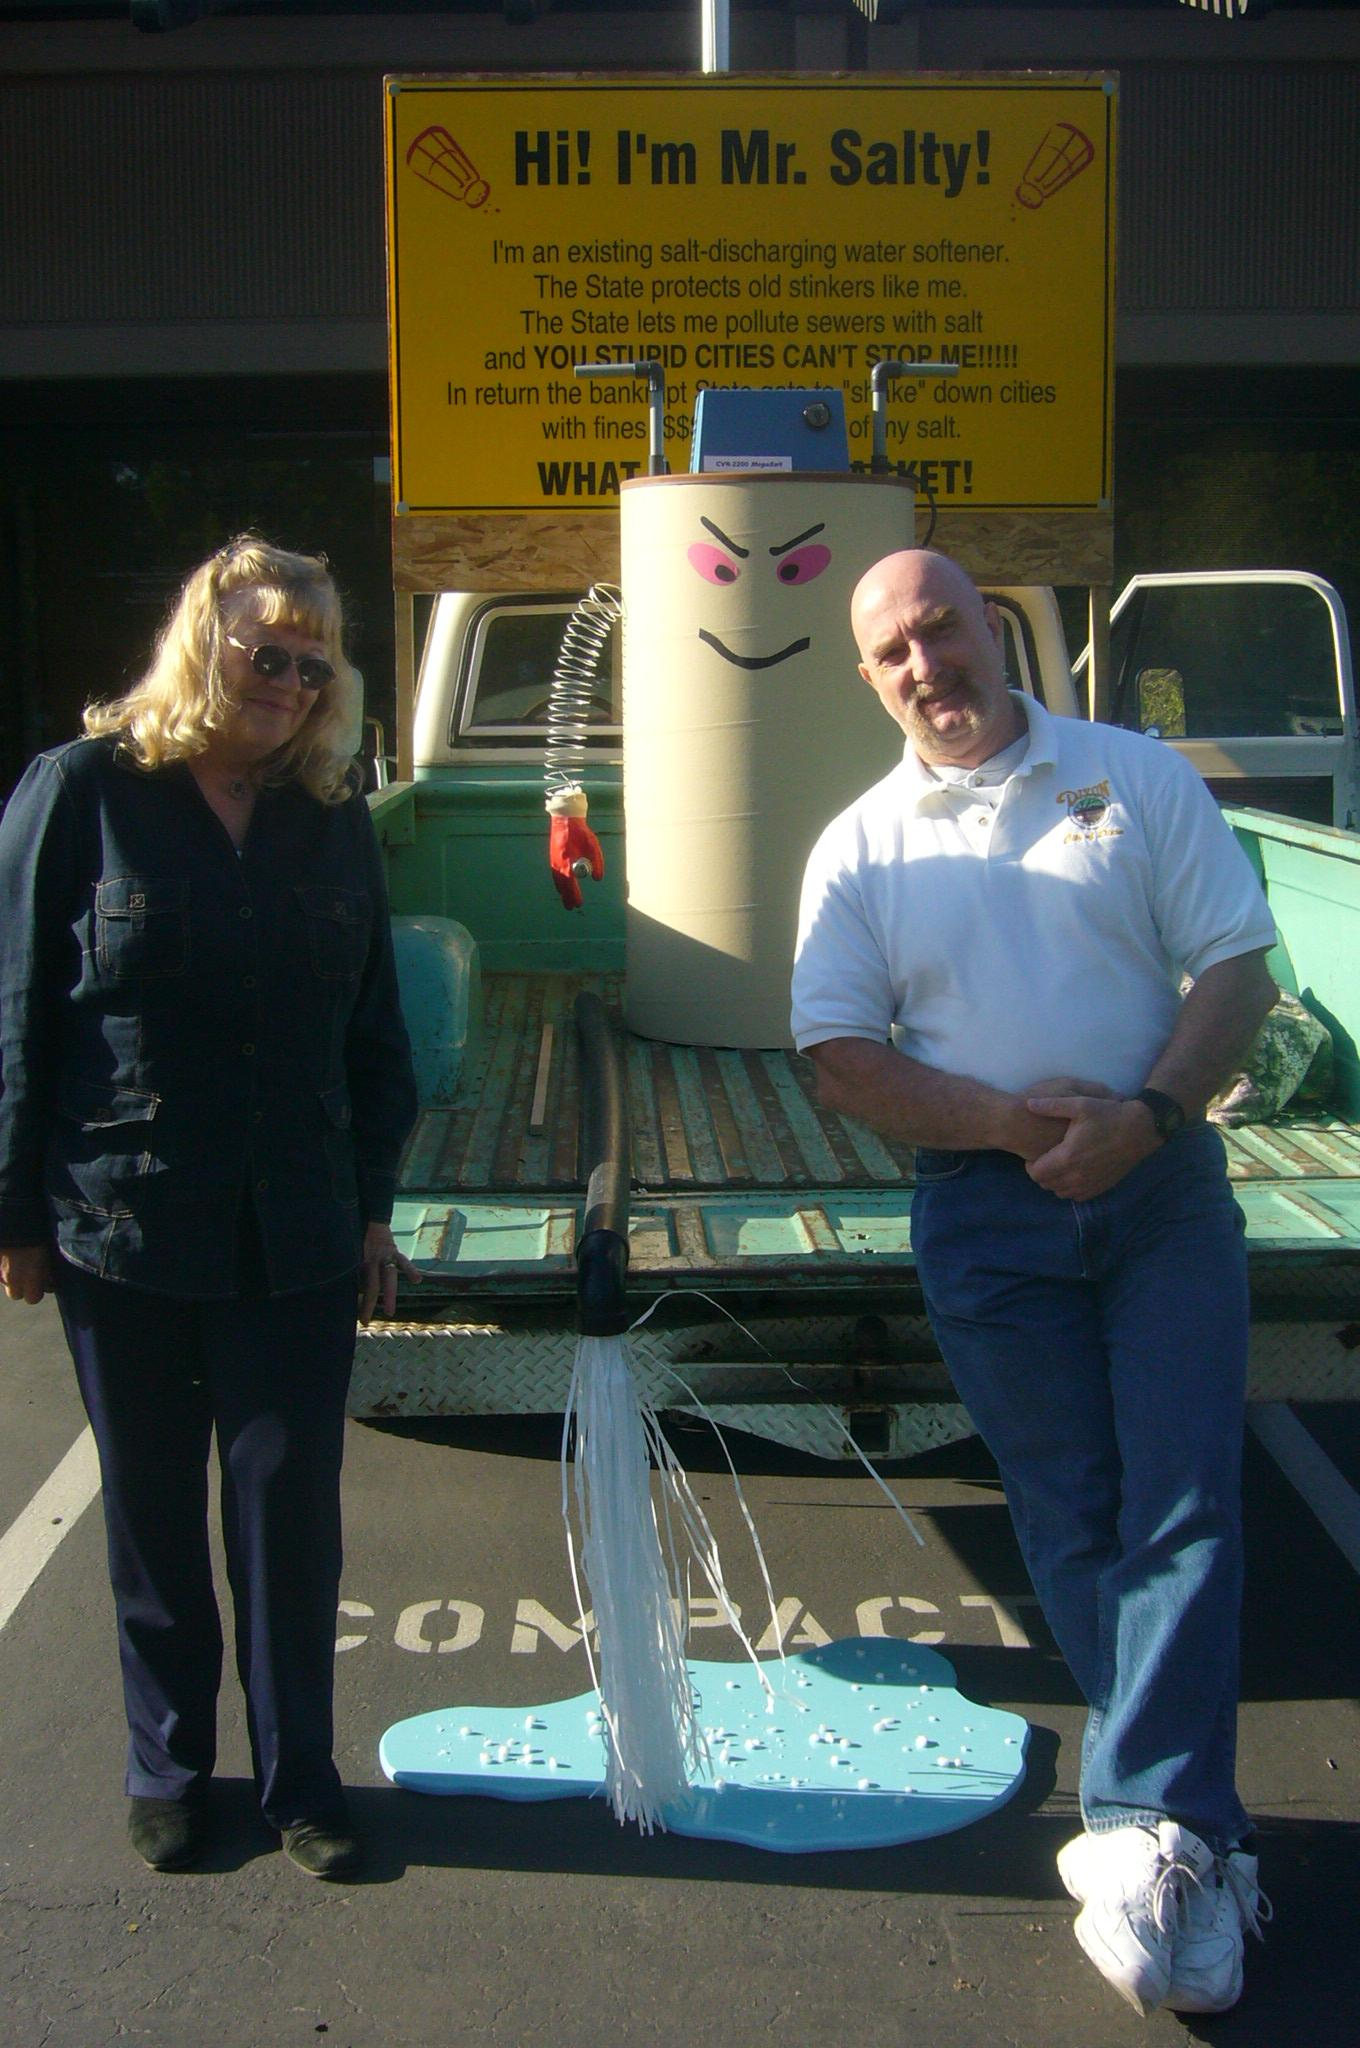 2008, Mr. SALTY. At the Regional Water Quality Control Board. Wanda Kiger-Tucker and Michael Ceremello with Mr. SALTY